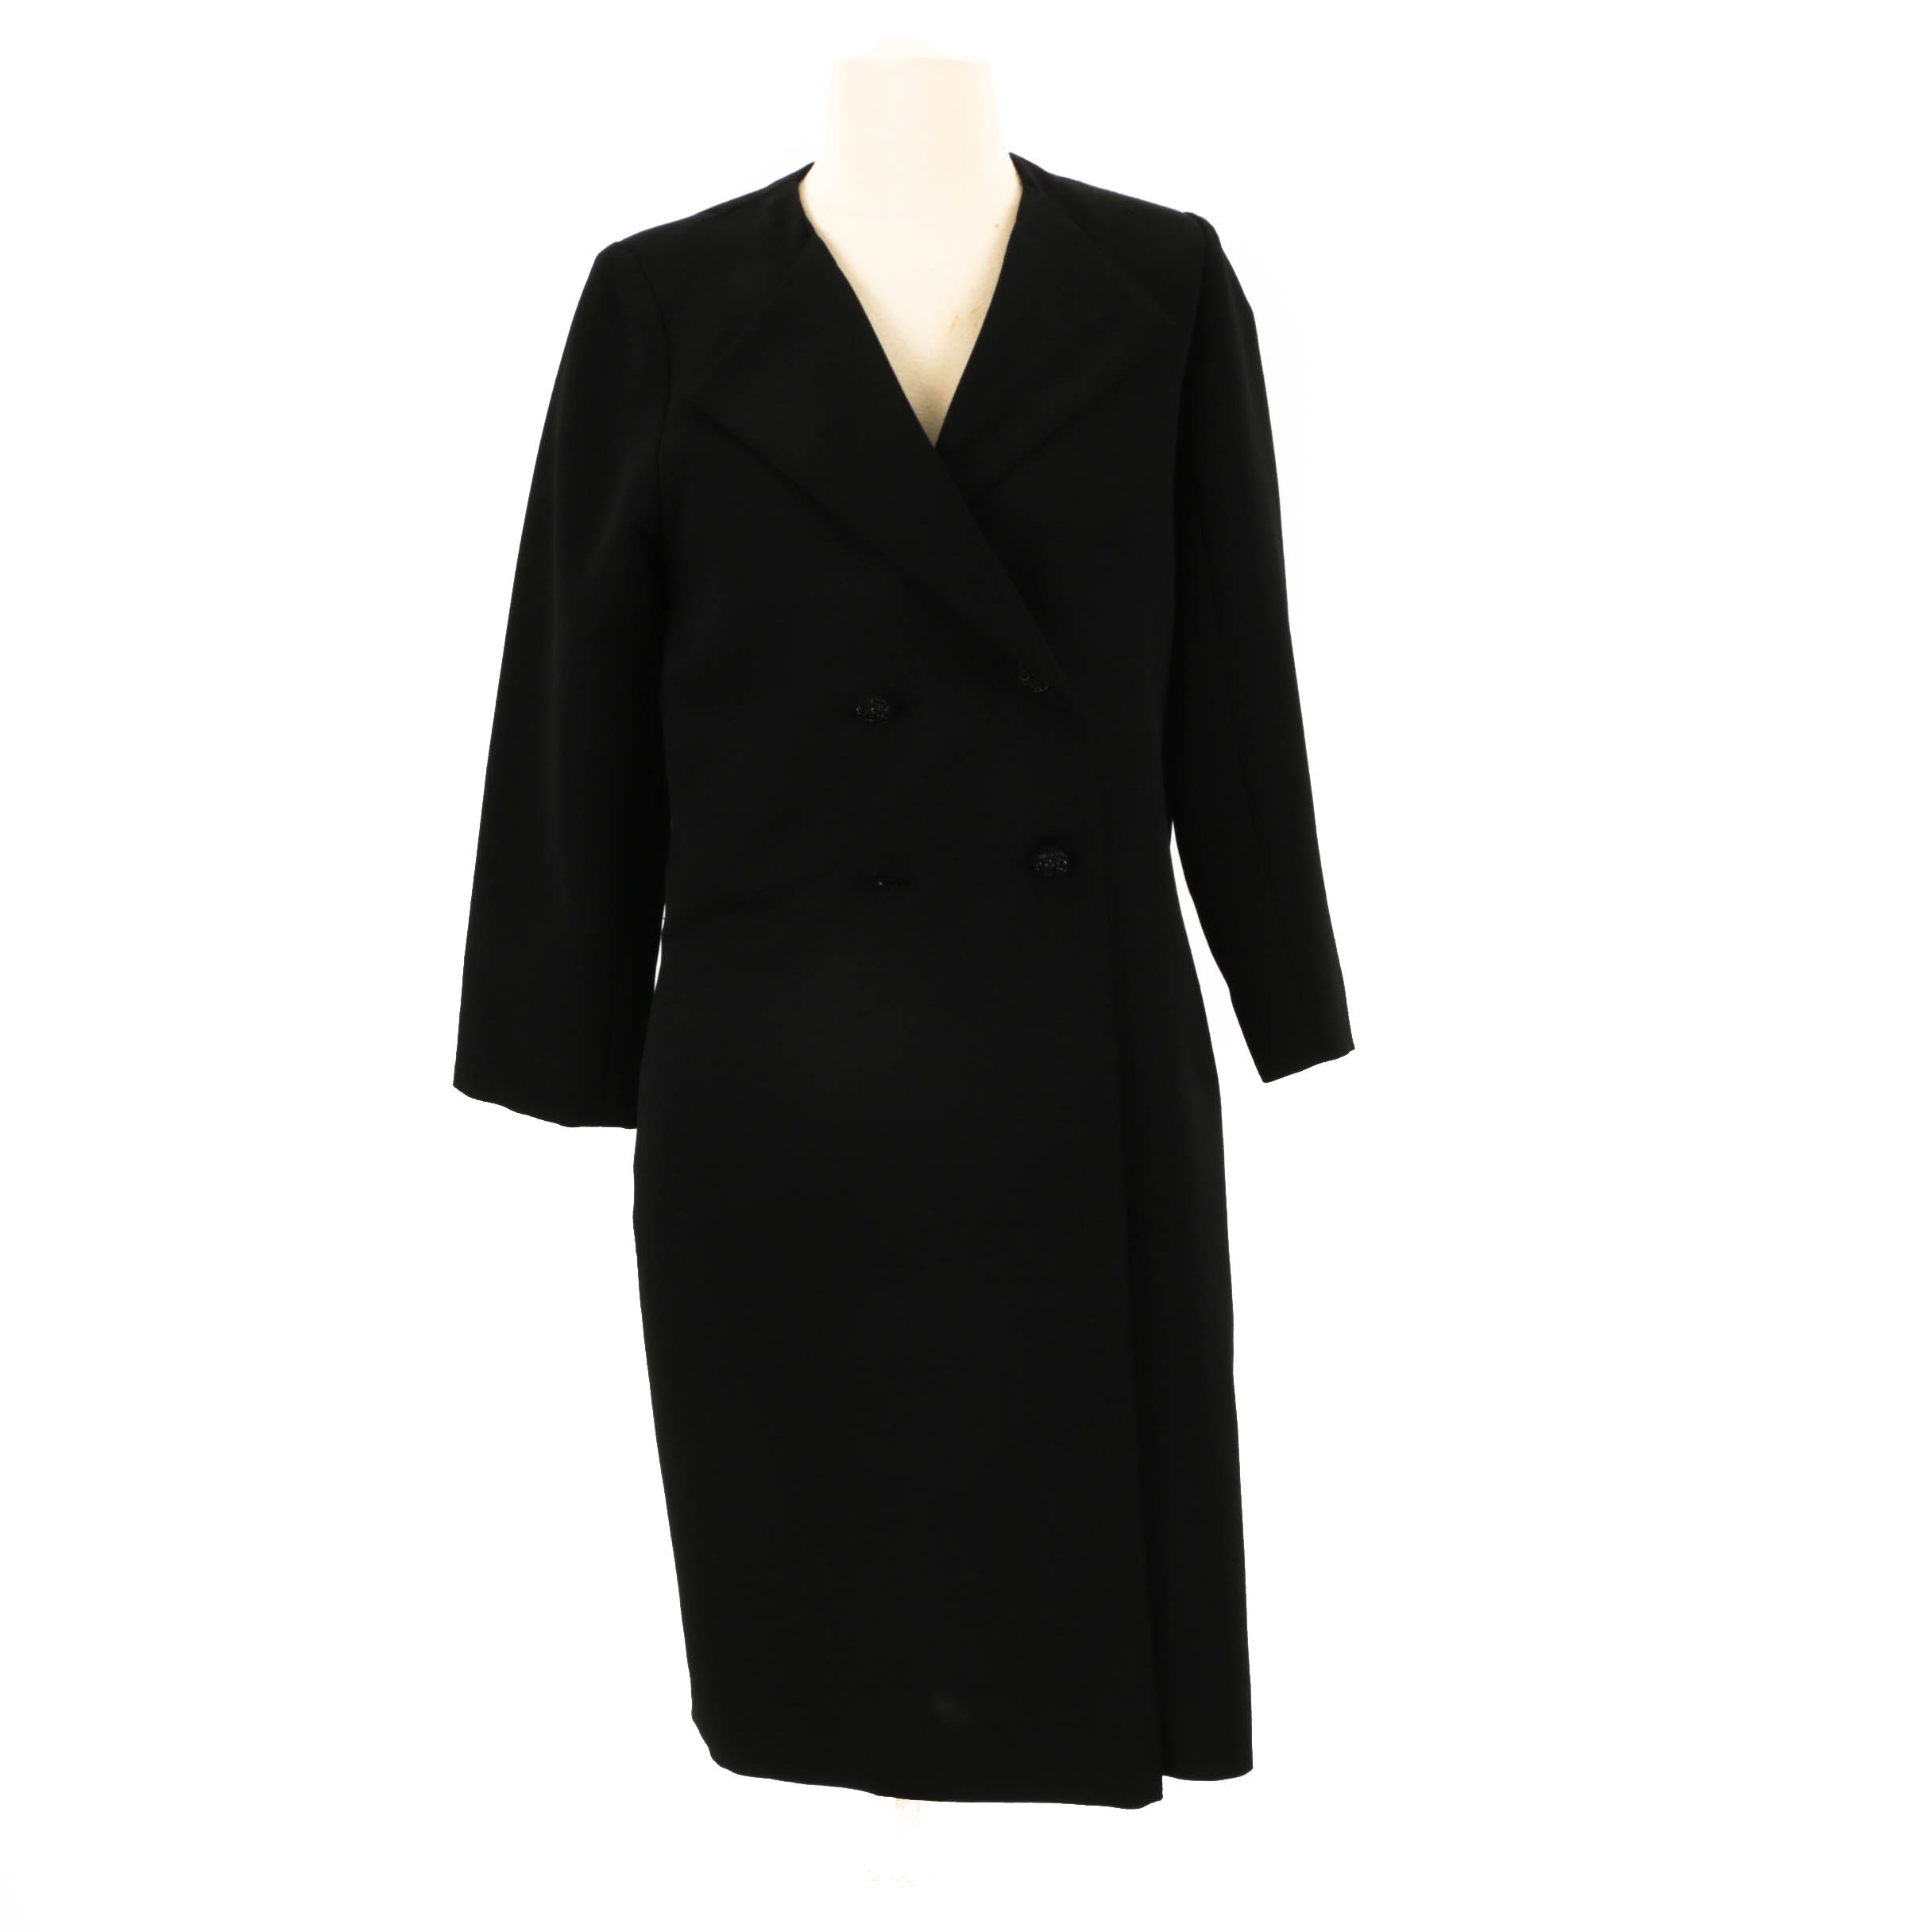 Women's Vintage Gidding Jenny Black Double-Breasted Coat